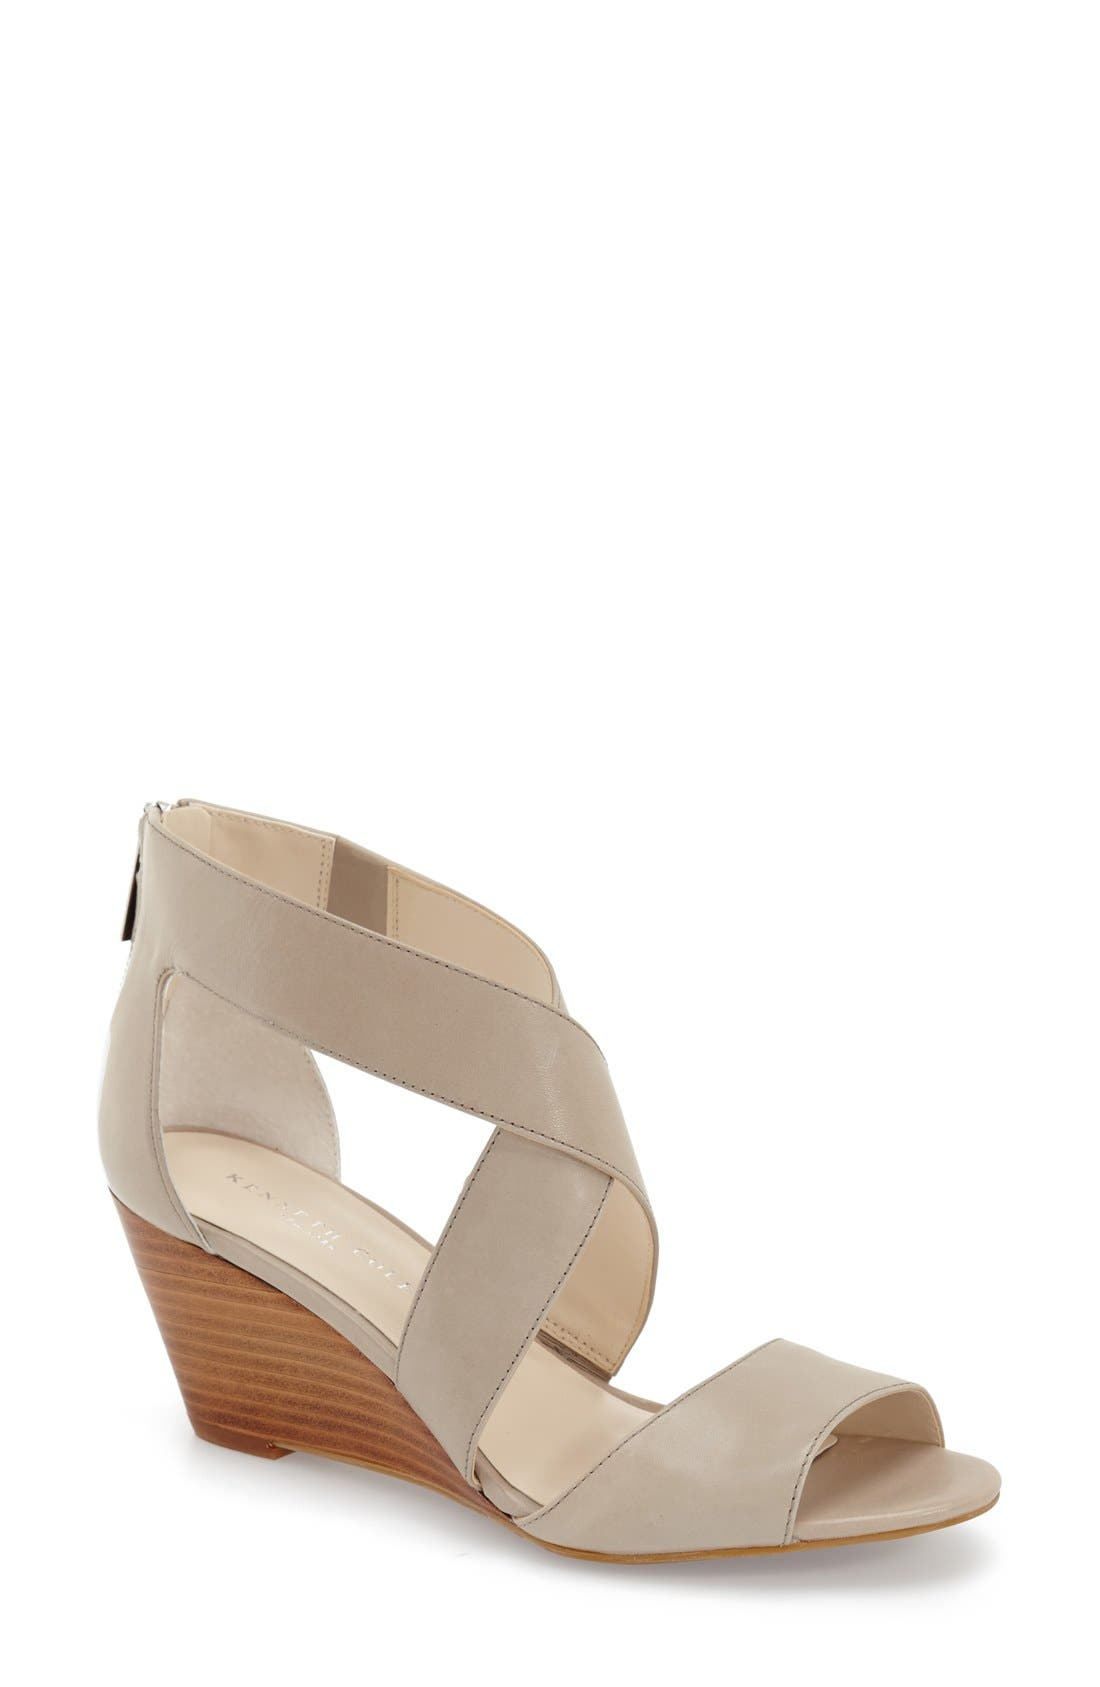 Alternate Image 1 Selected - Kenneth Cole New York 'Drina' Wedge Sandal (Women)